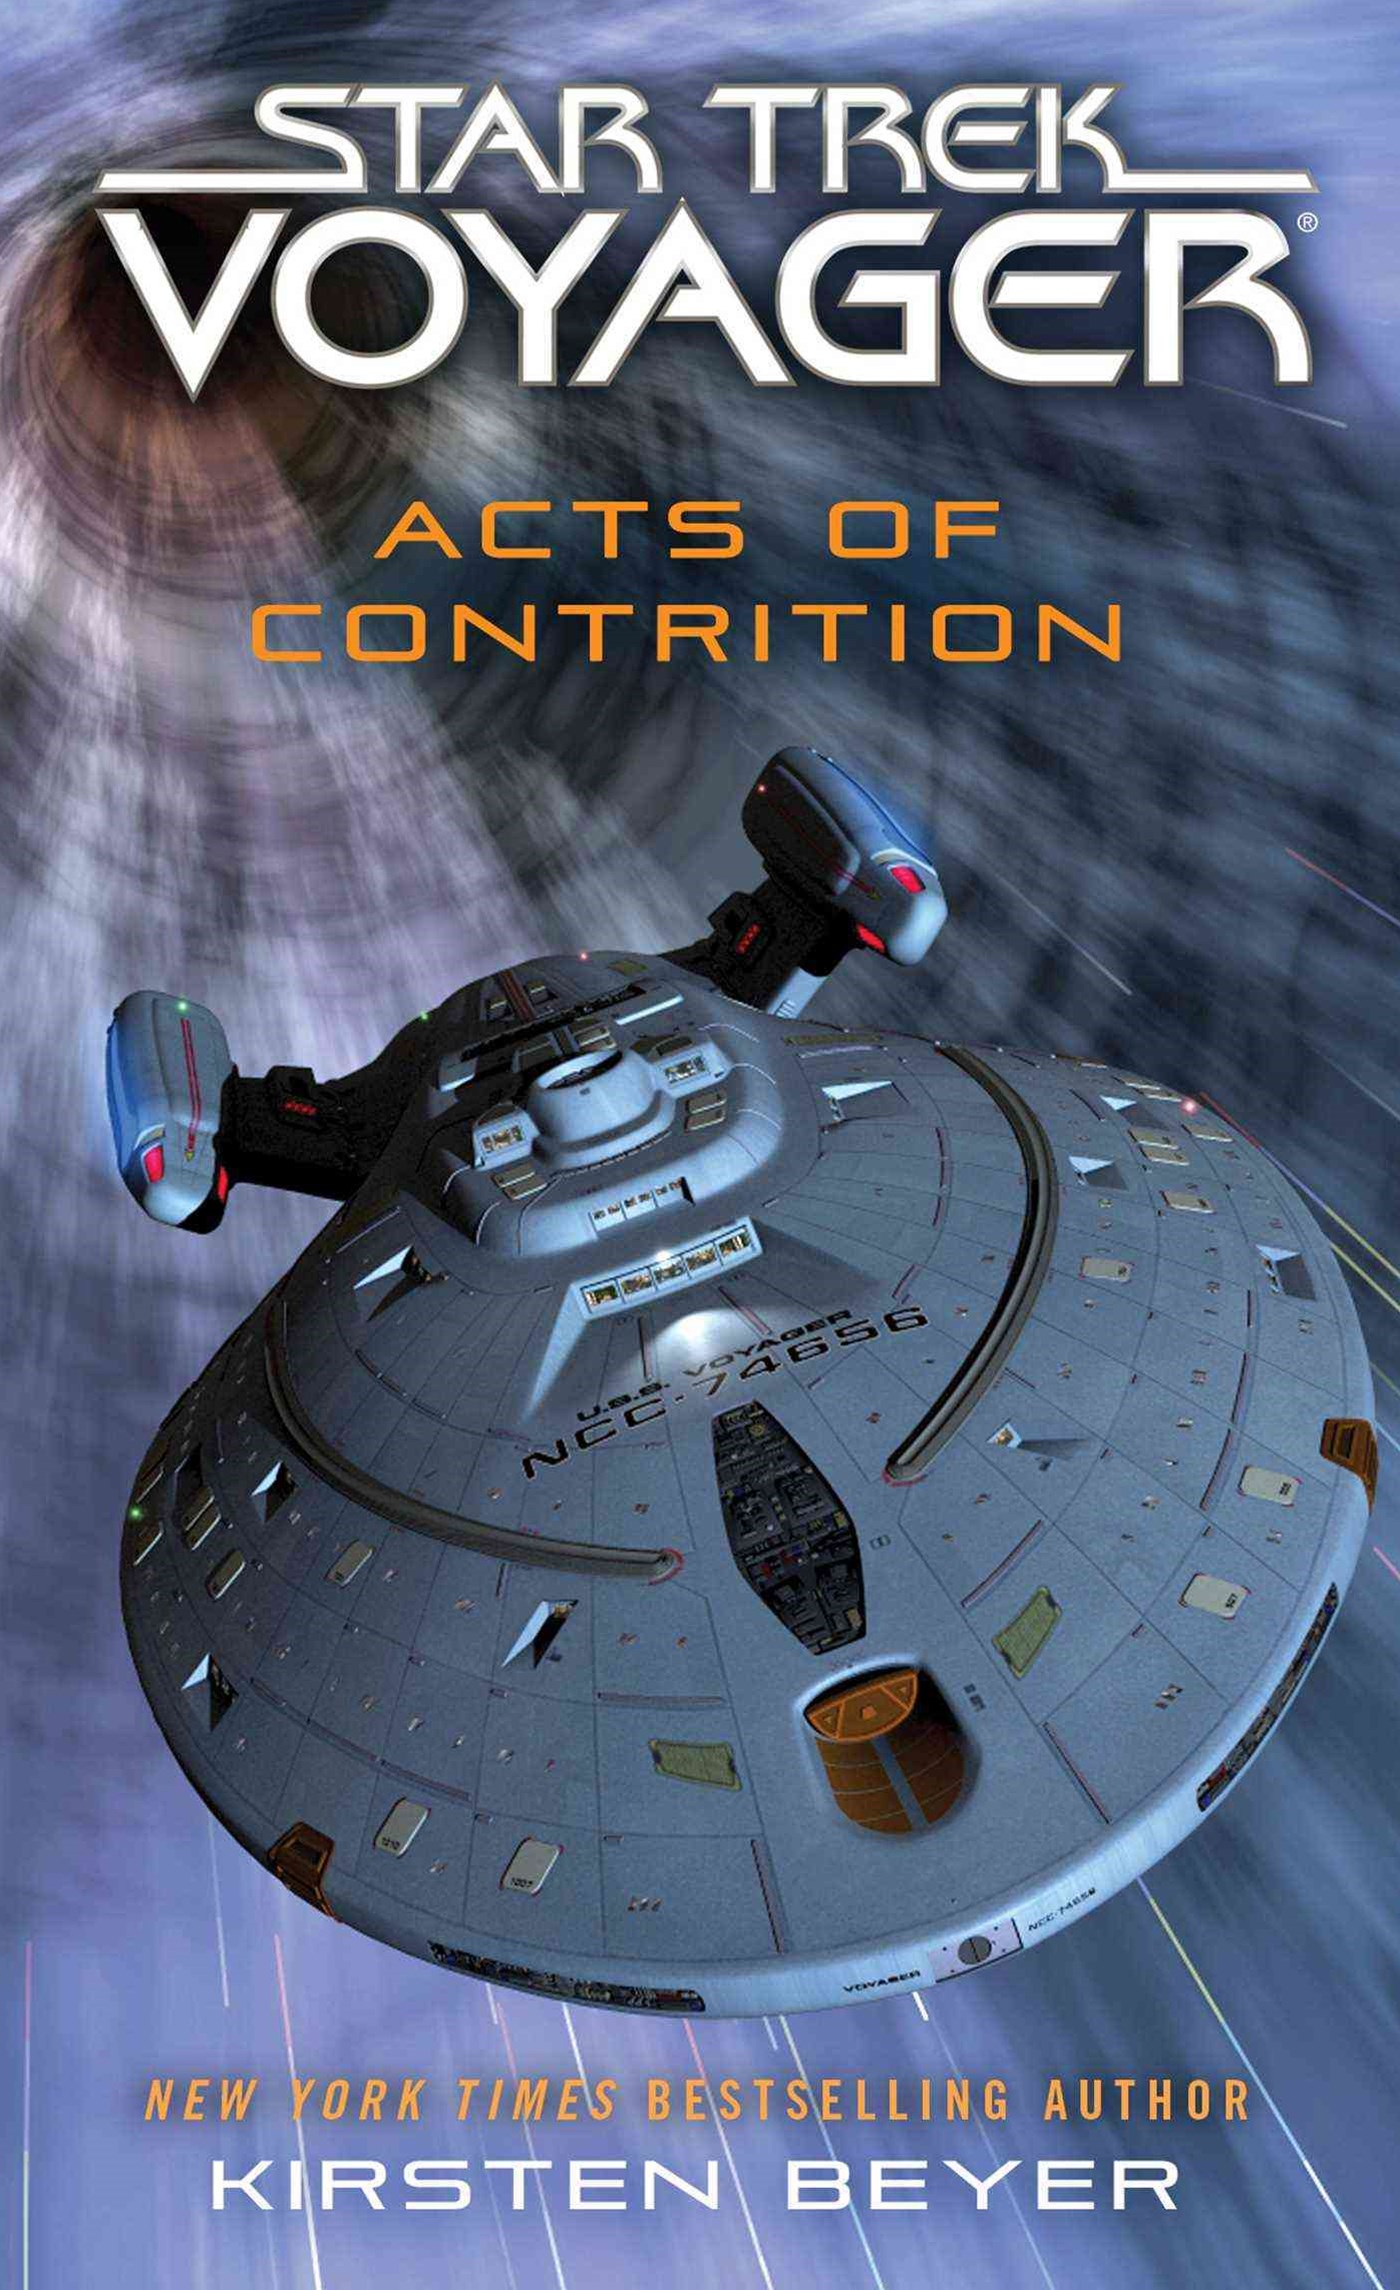 Star Trek: Voyager: Acts of Contrition